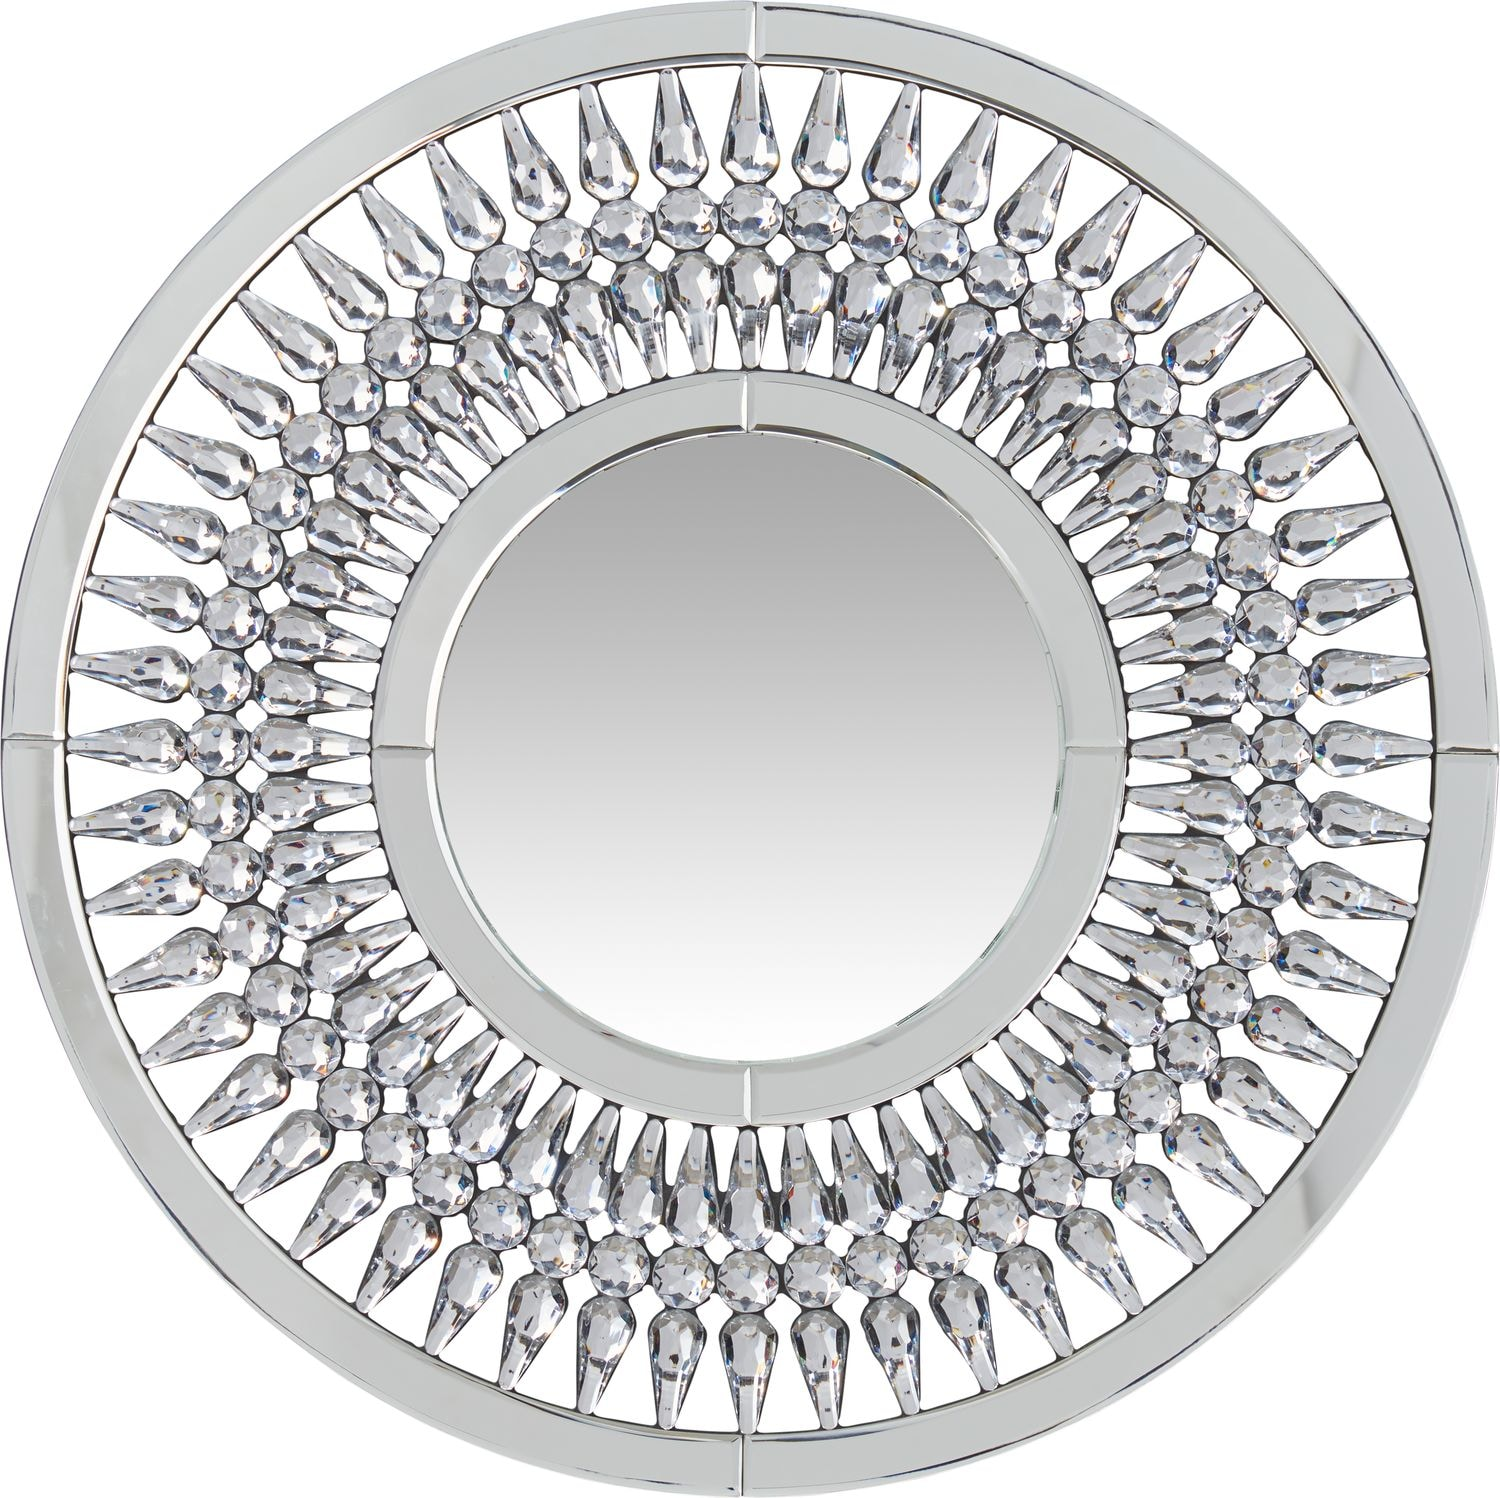 Home Accessories - Round Crystal Spoke Wall Mirror